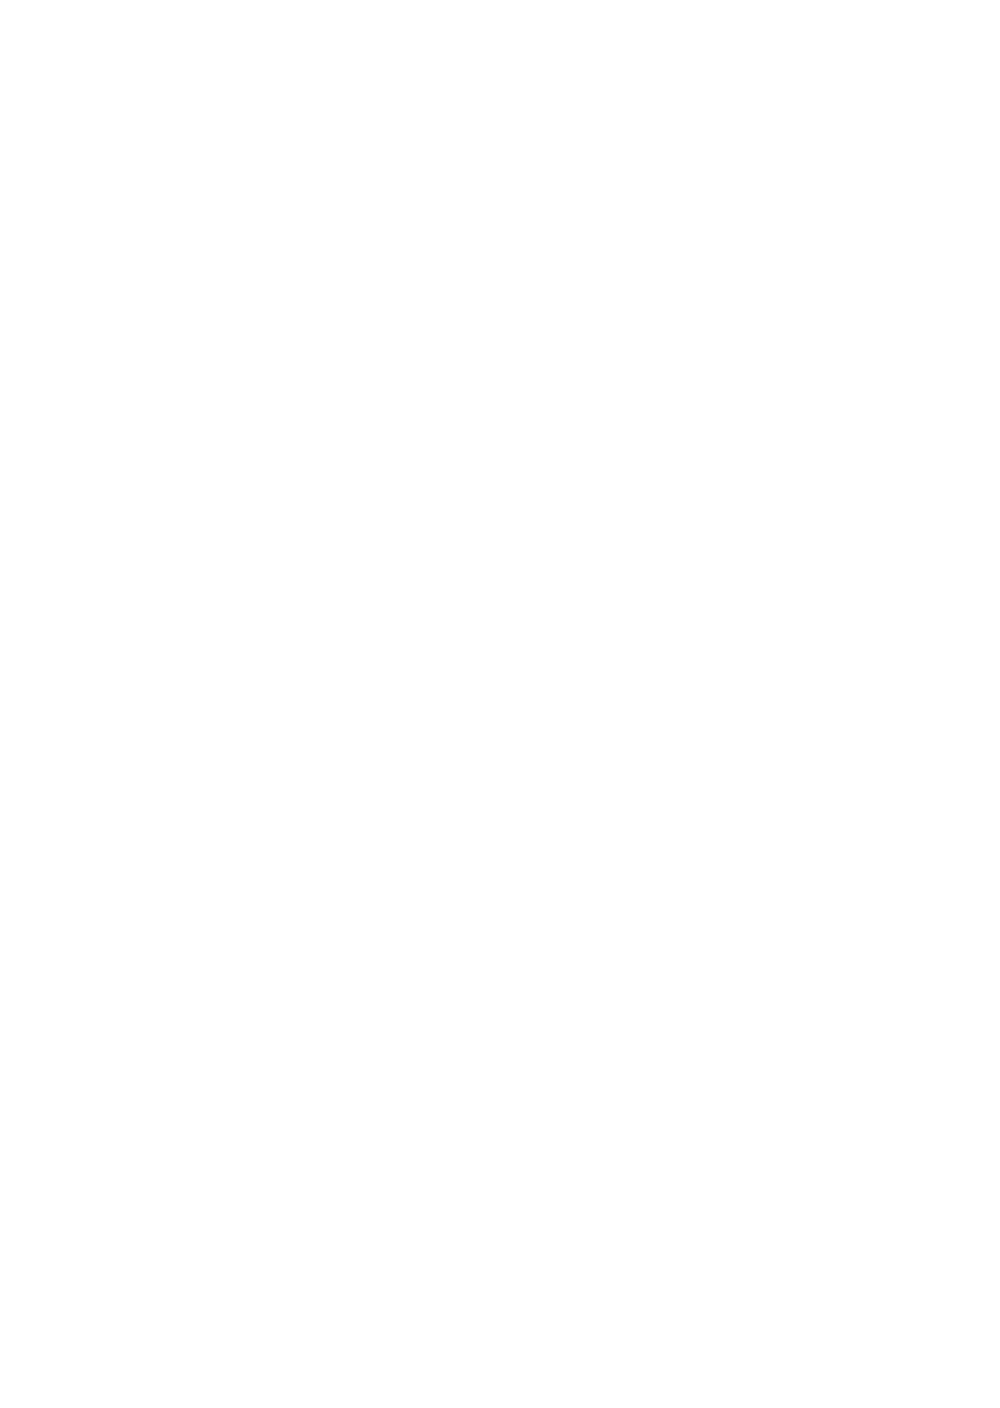 Tinnitus Management